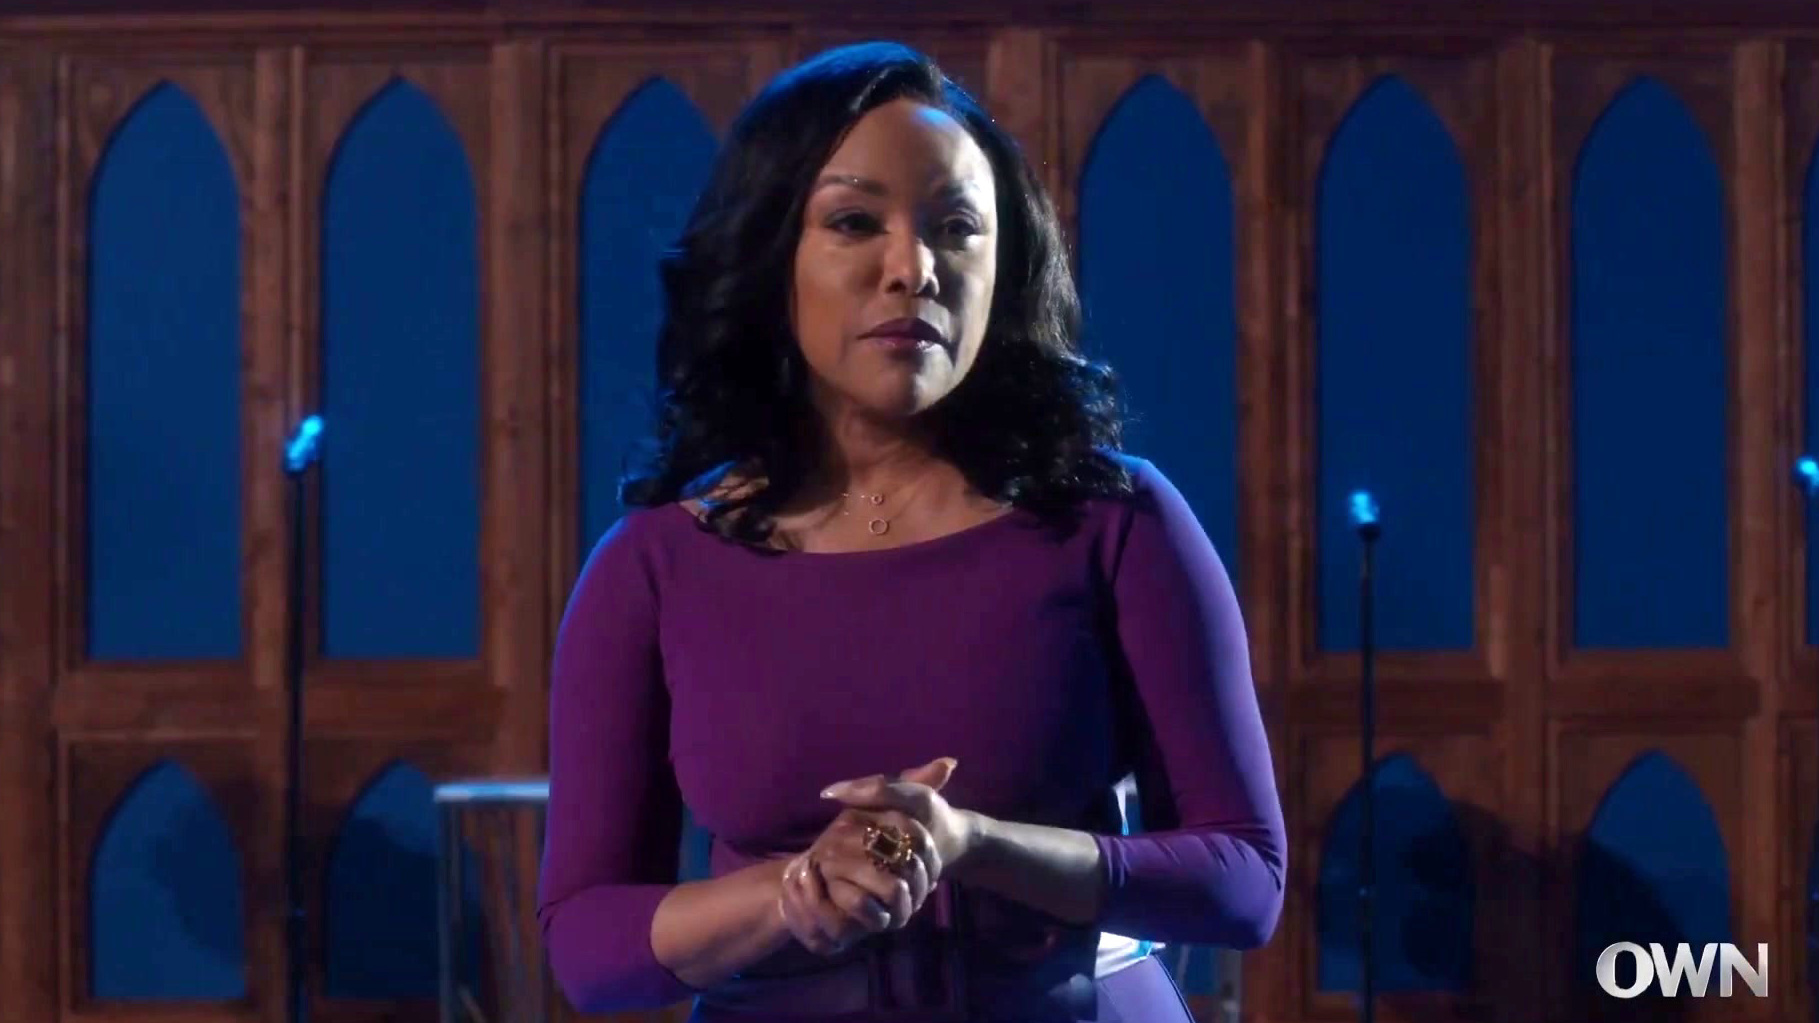 Greenleaf Tv Show News Videos Full Episodes And More Tv Guide